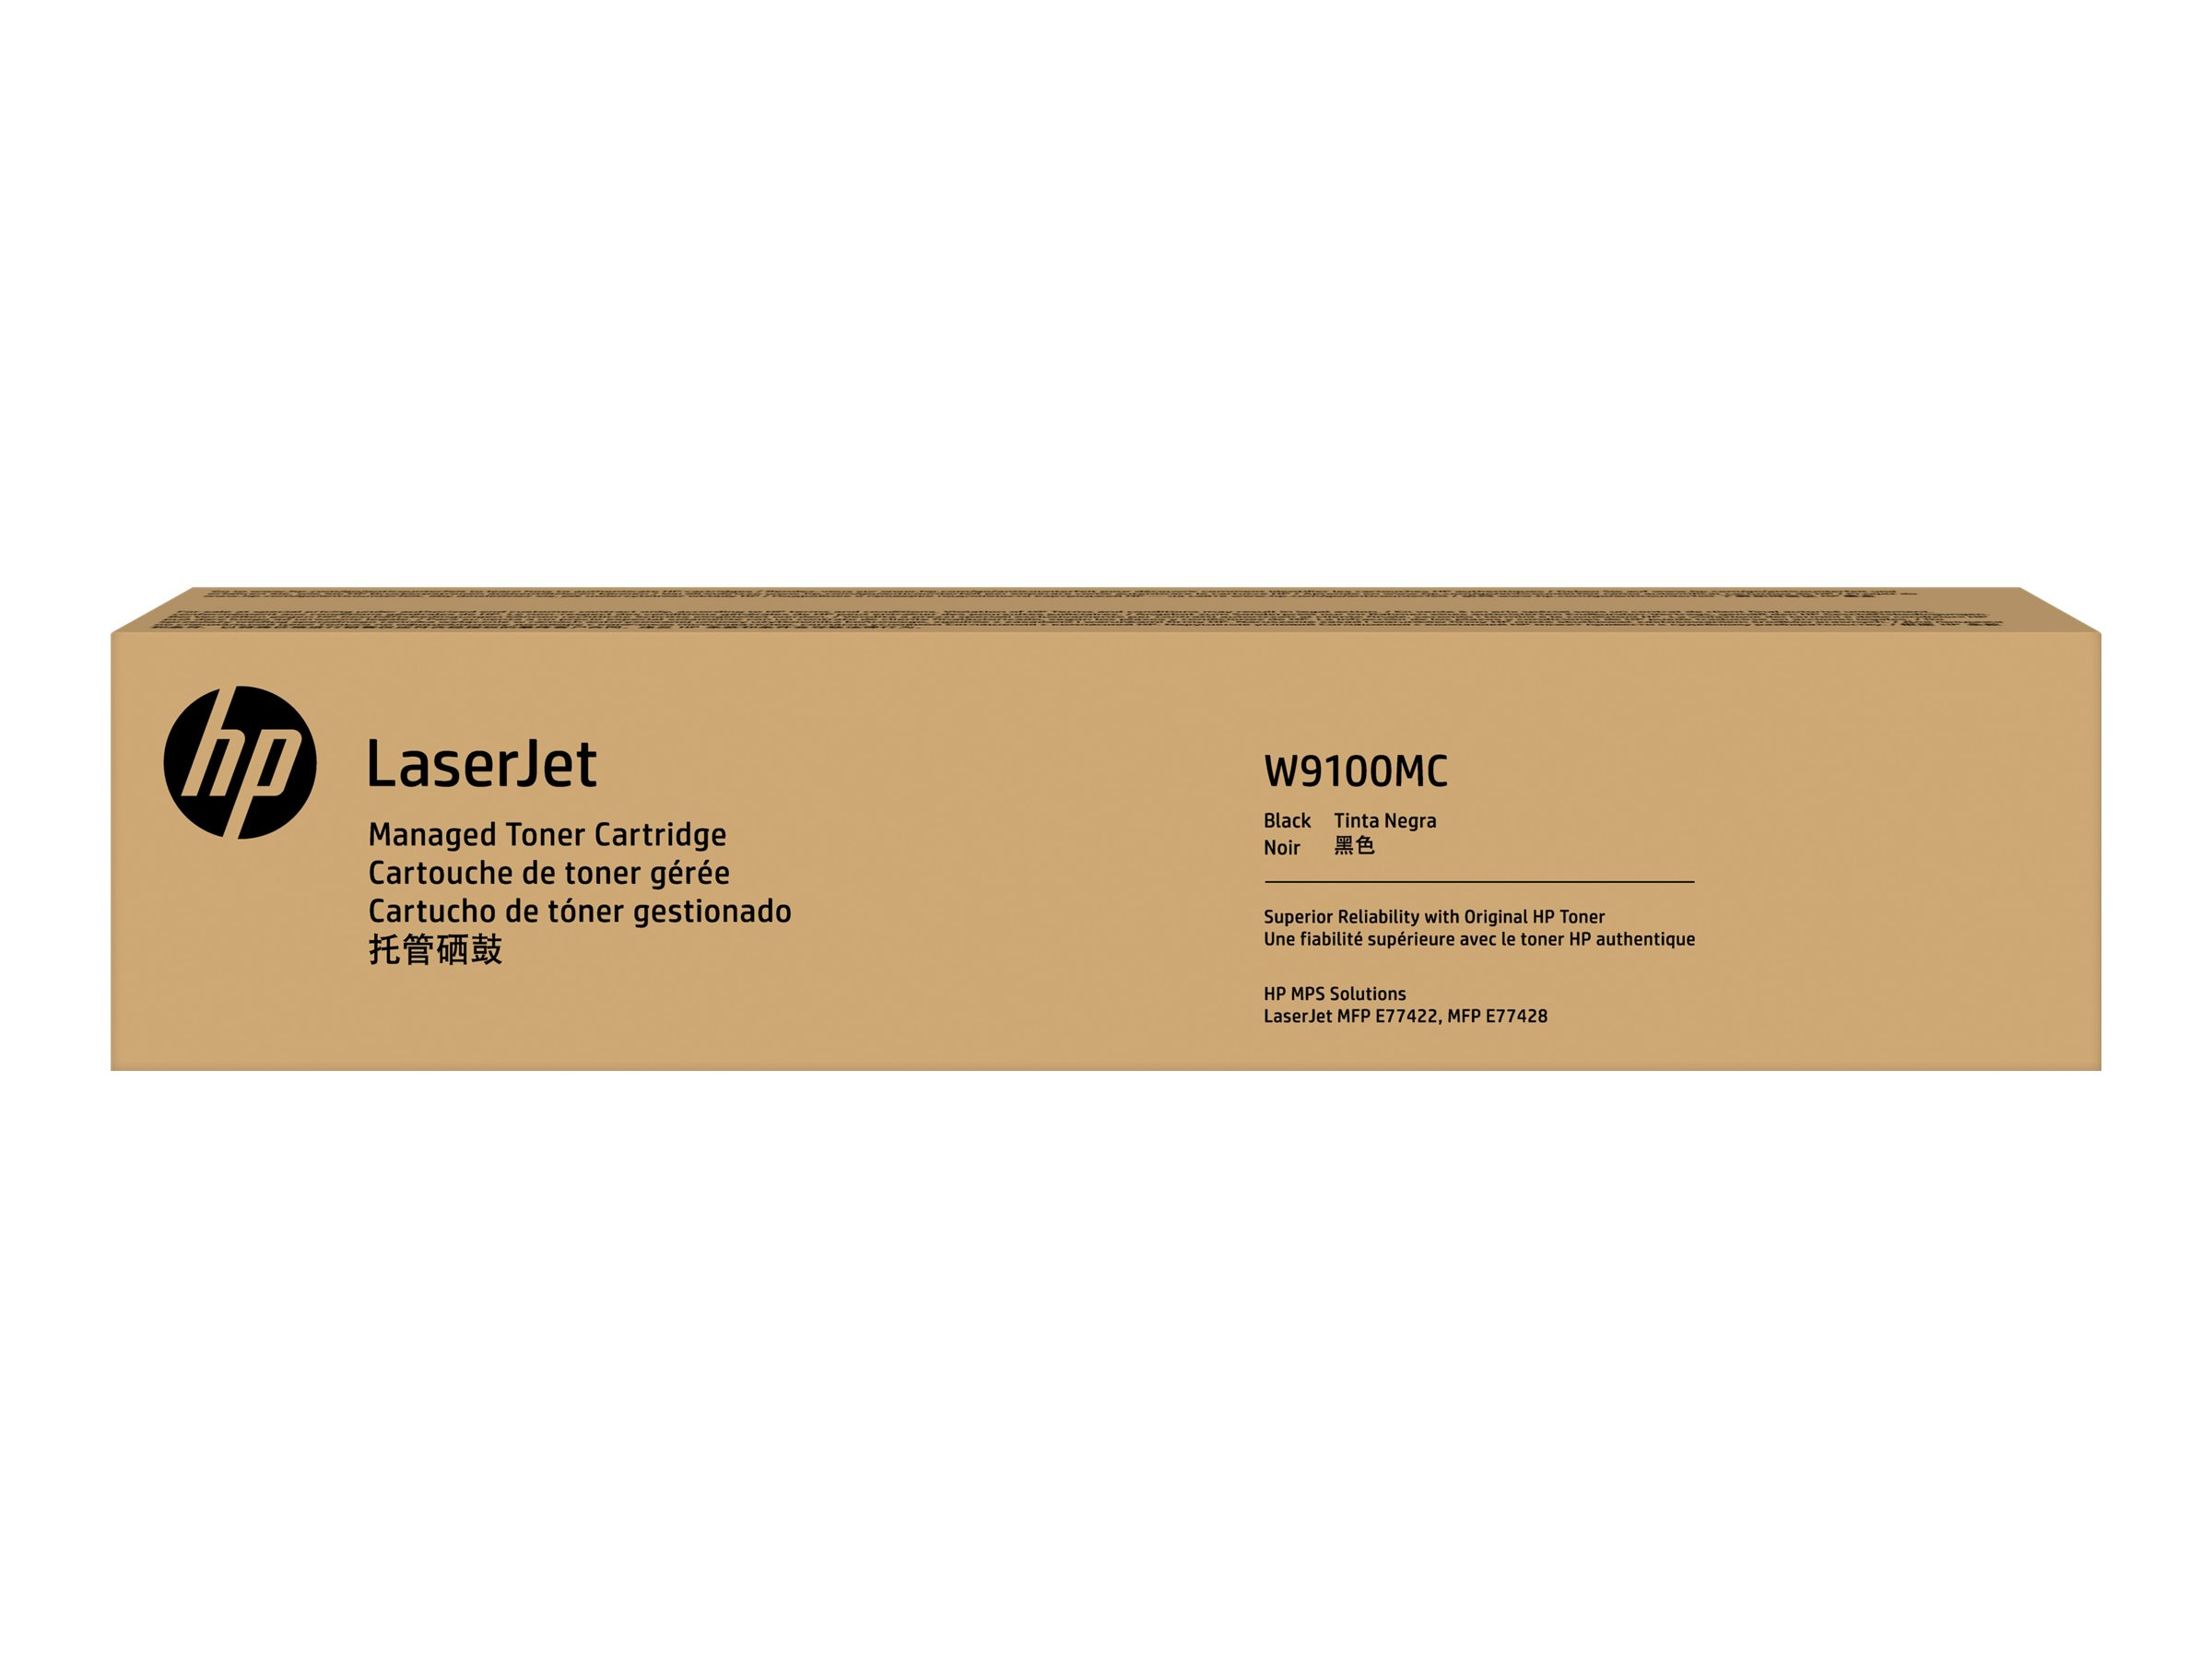 HP Black LaserJet toner cartridge (W9100MC)